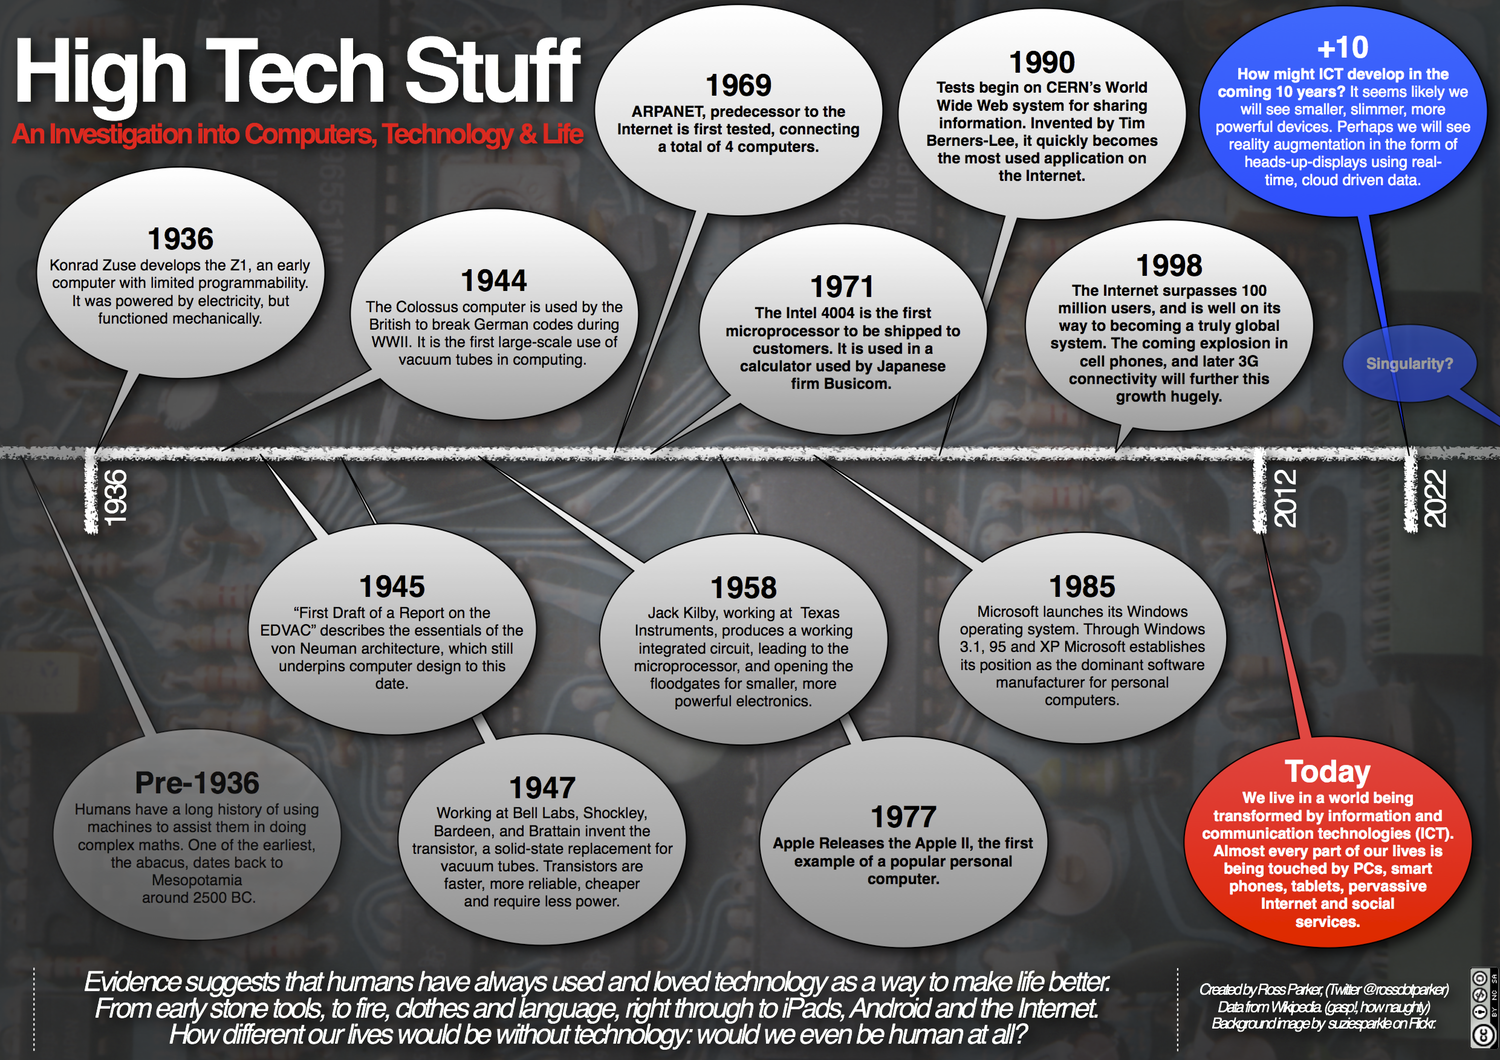 High Tech Stuff Infographic